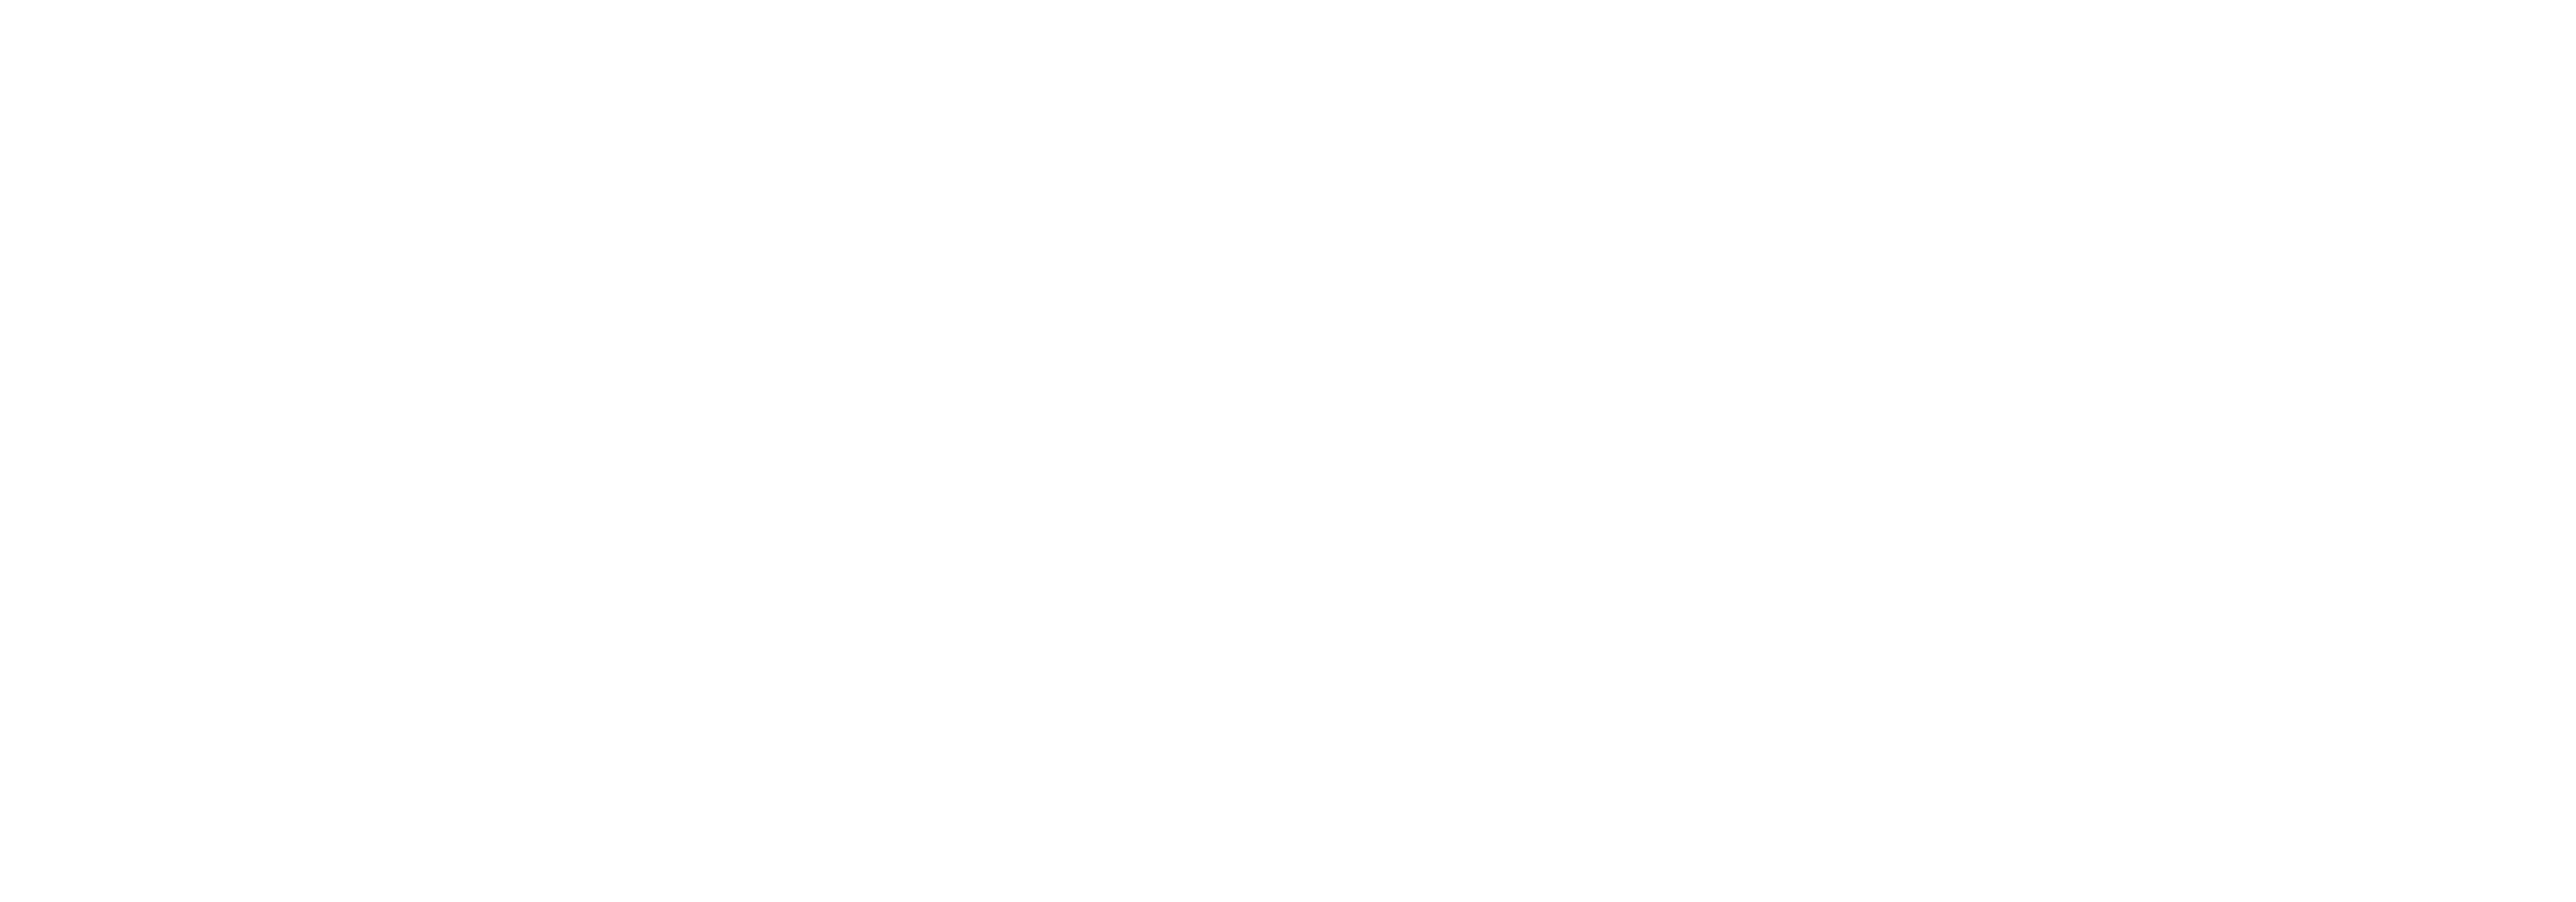 New Montgomery Florist - Flower Delivery in Montgomery City, MO